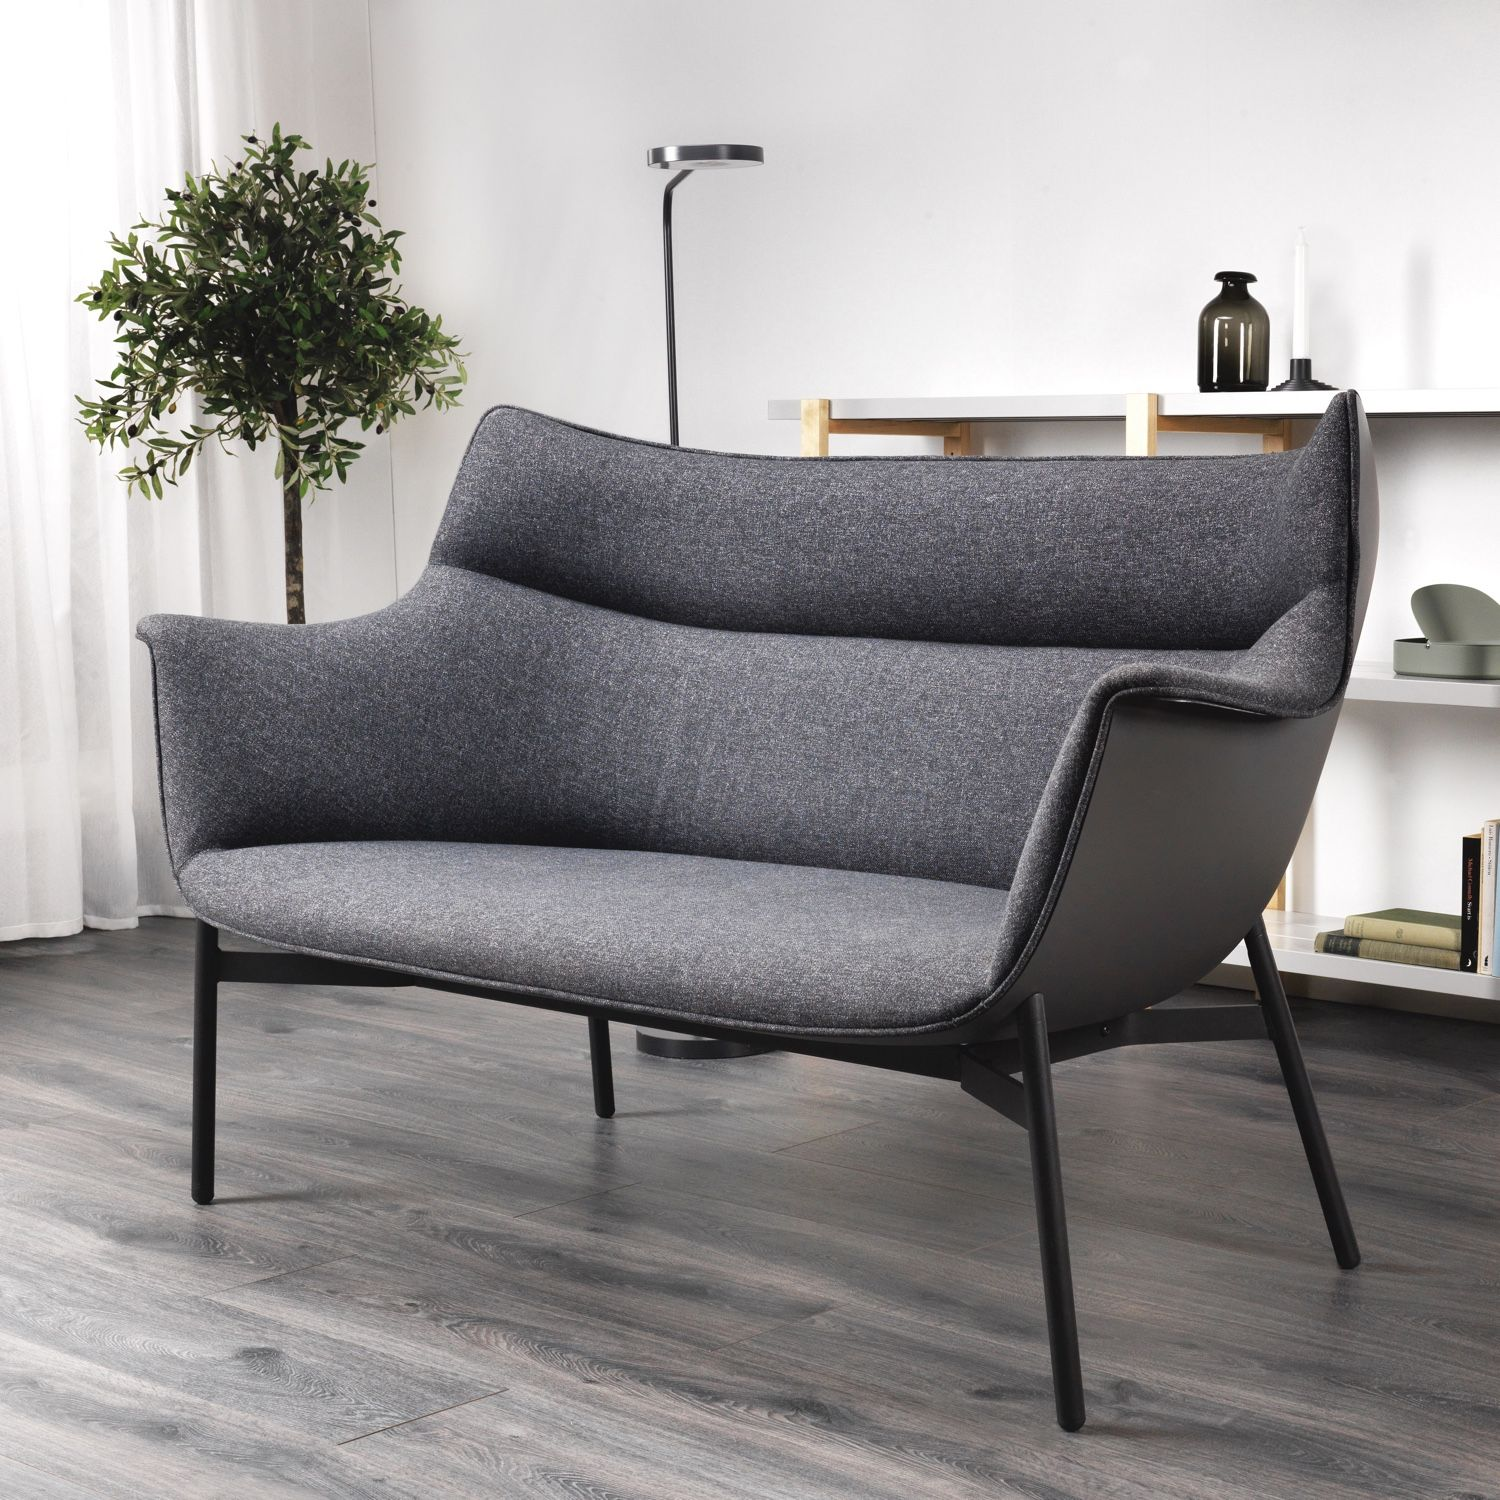 Astonishing 10 Standouts From The Ikea X Hay Ypperlig Collection Sofa Machost Co Dining Chair Design Ideas Machostcouk